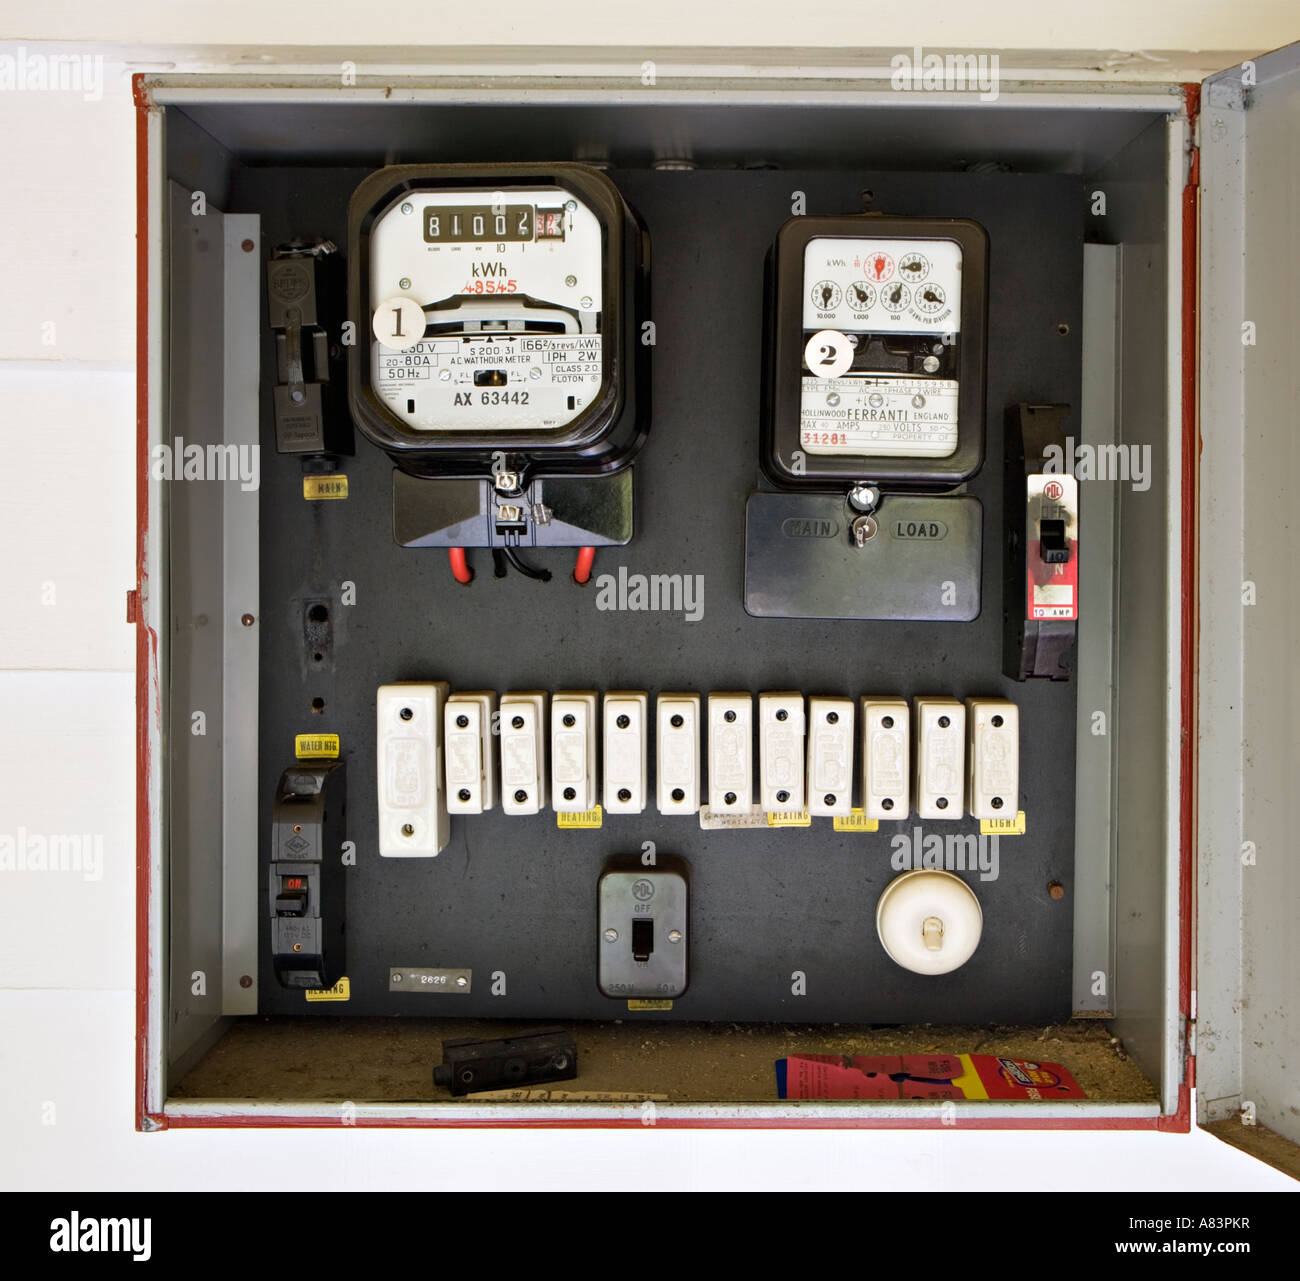 electric meter stock photos electric meter stock images alamy electricity meter in box old style fuses circa 1962 in home